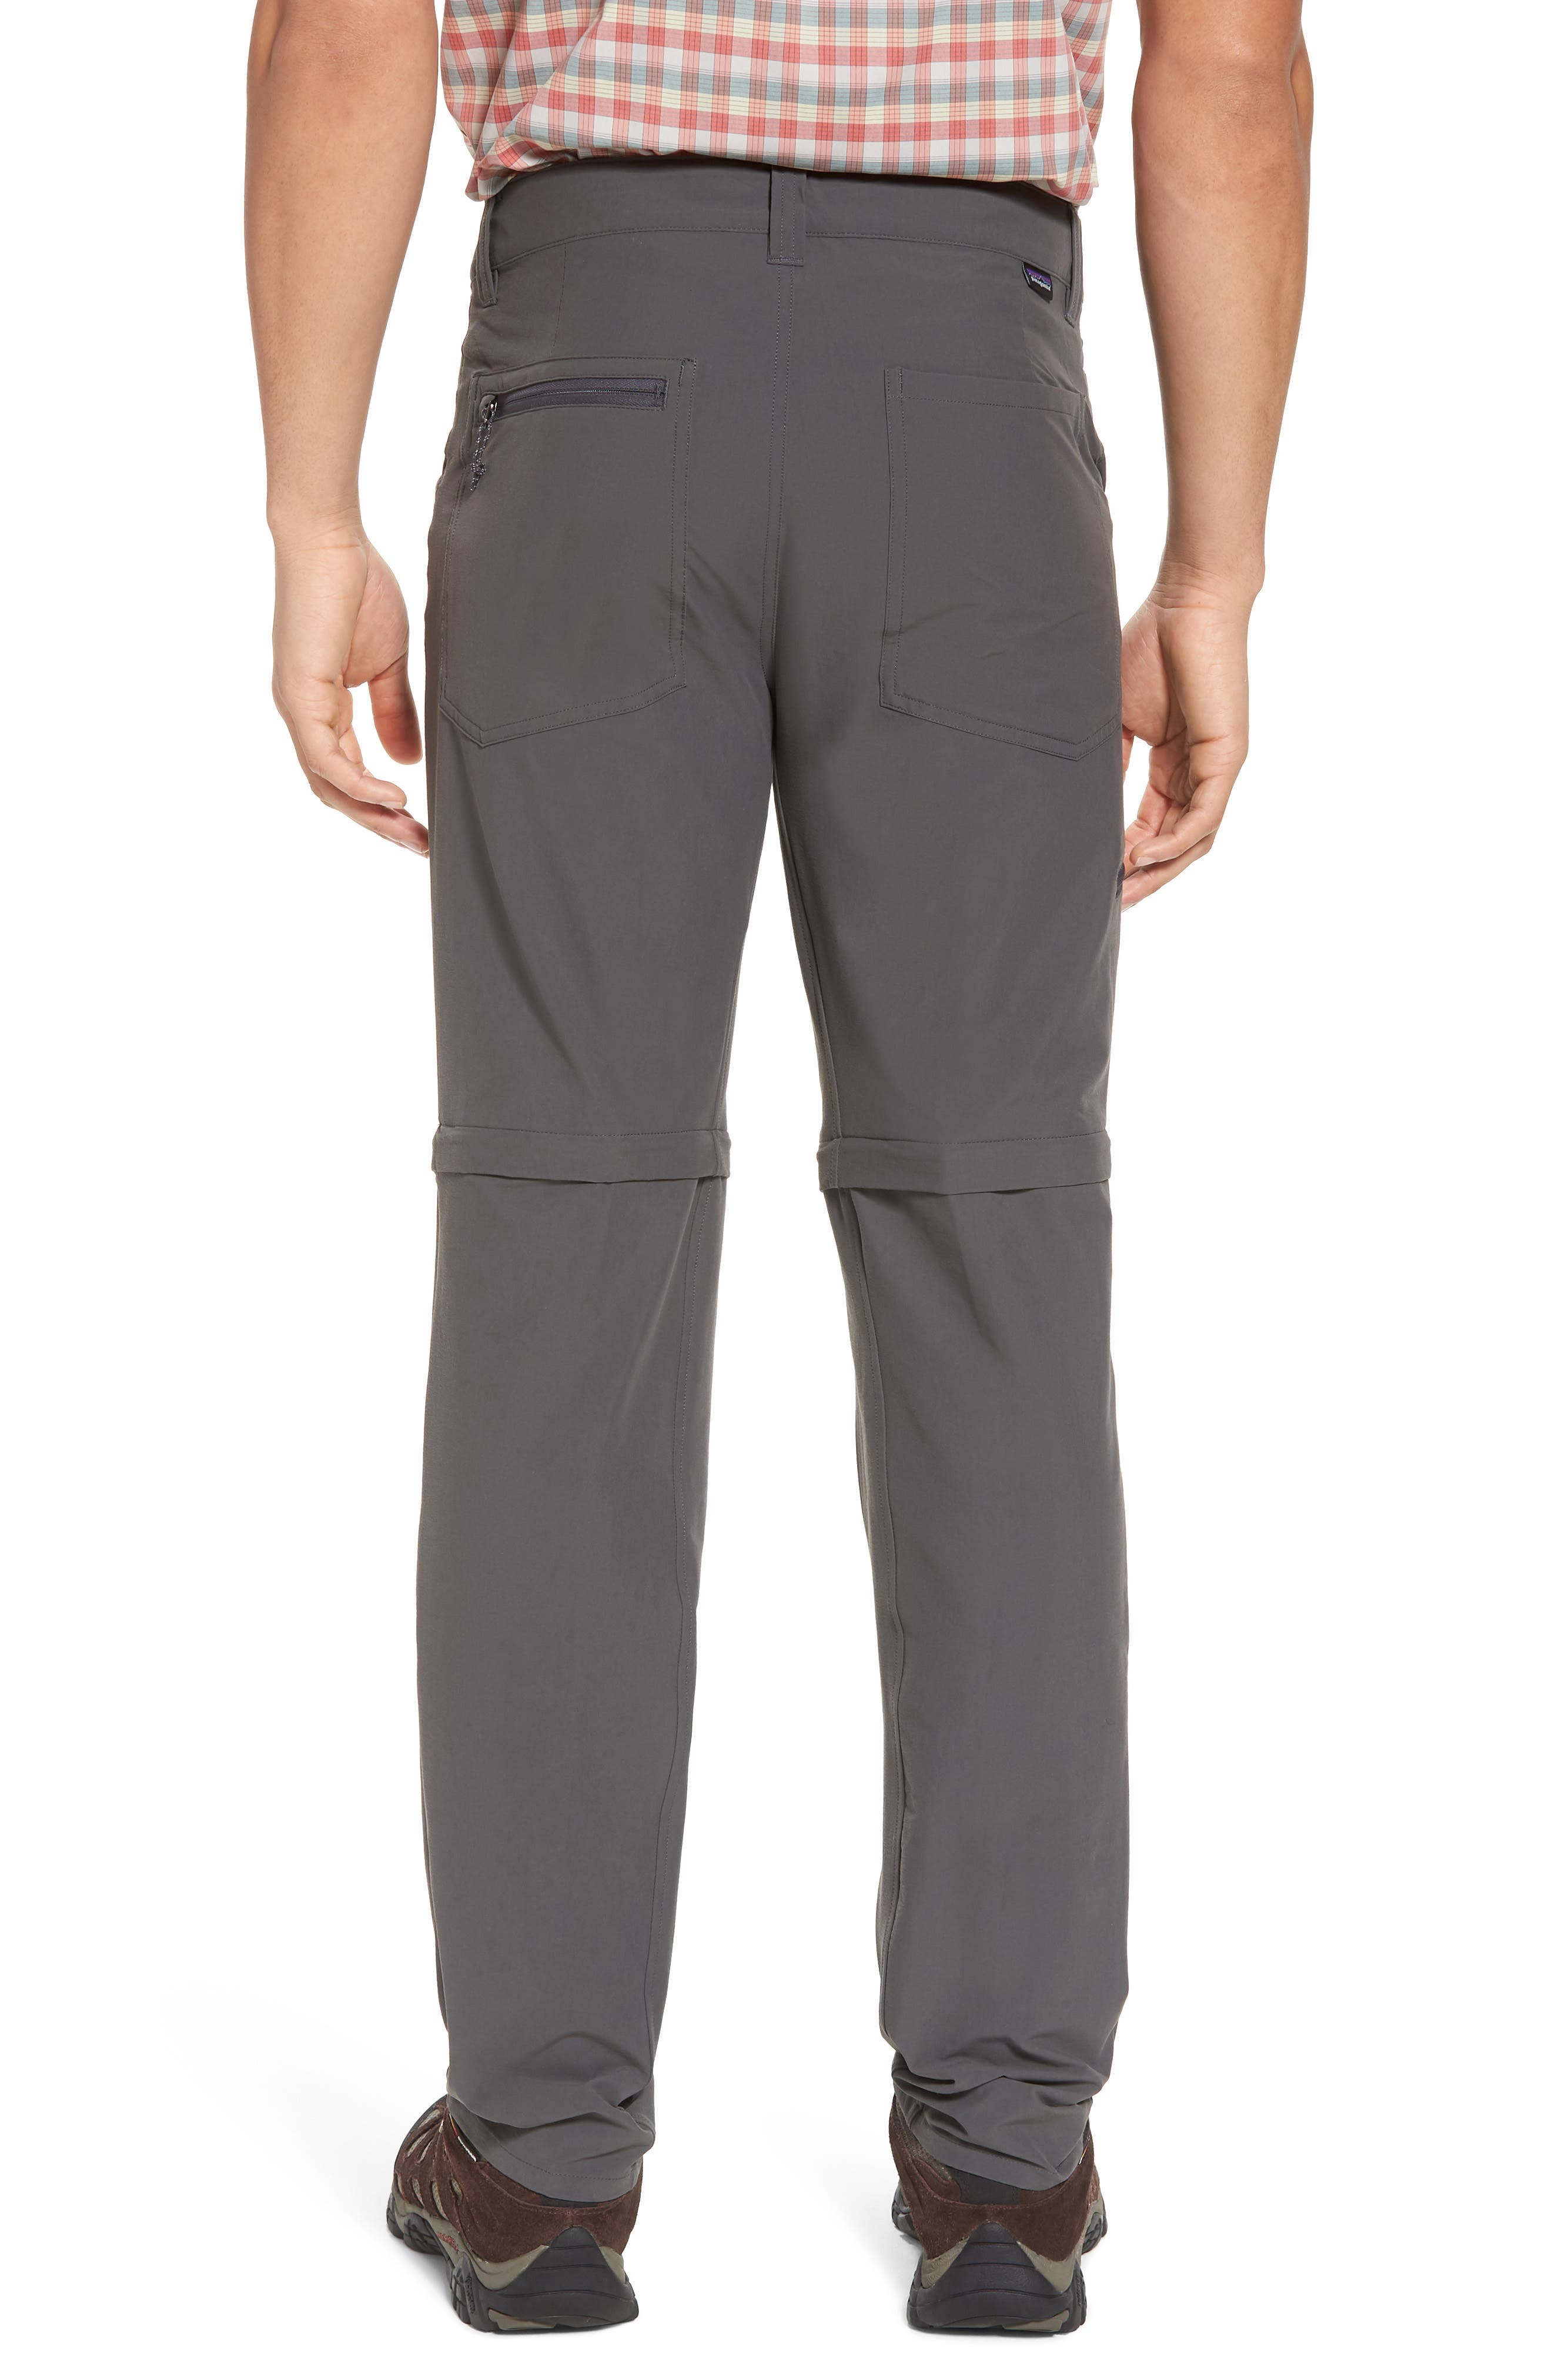 M's Quandry Convertible Pants,                             Alternate thumbnail 2, color,                             FORGE GREY